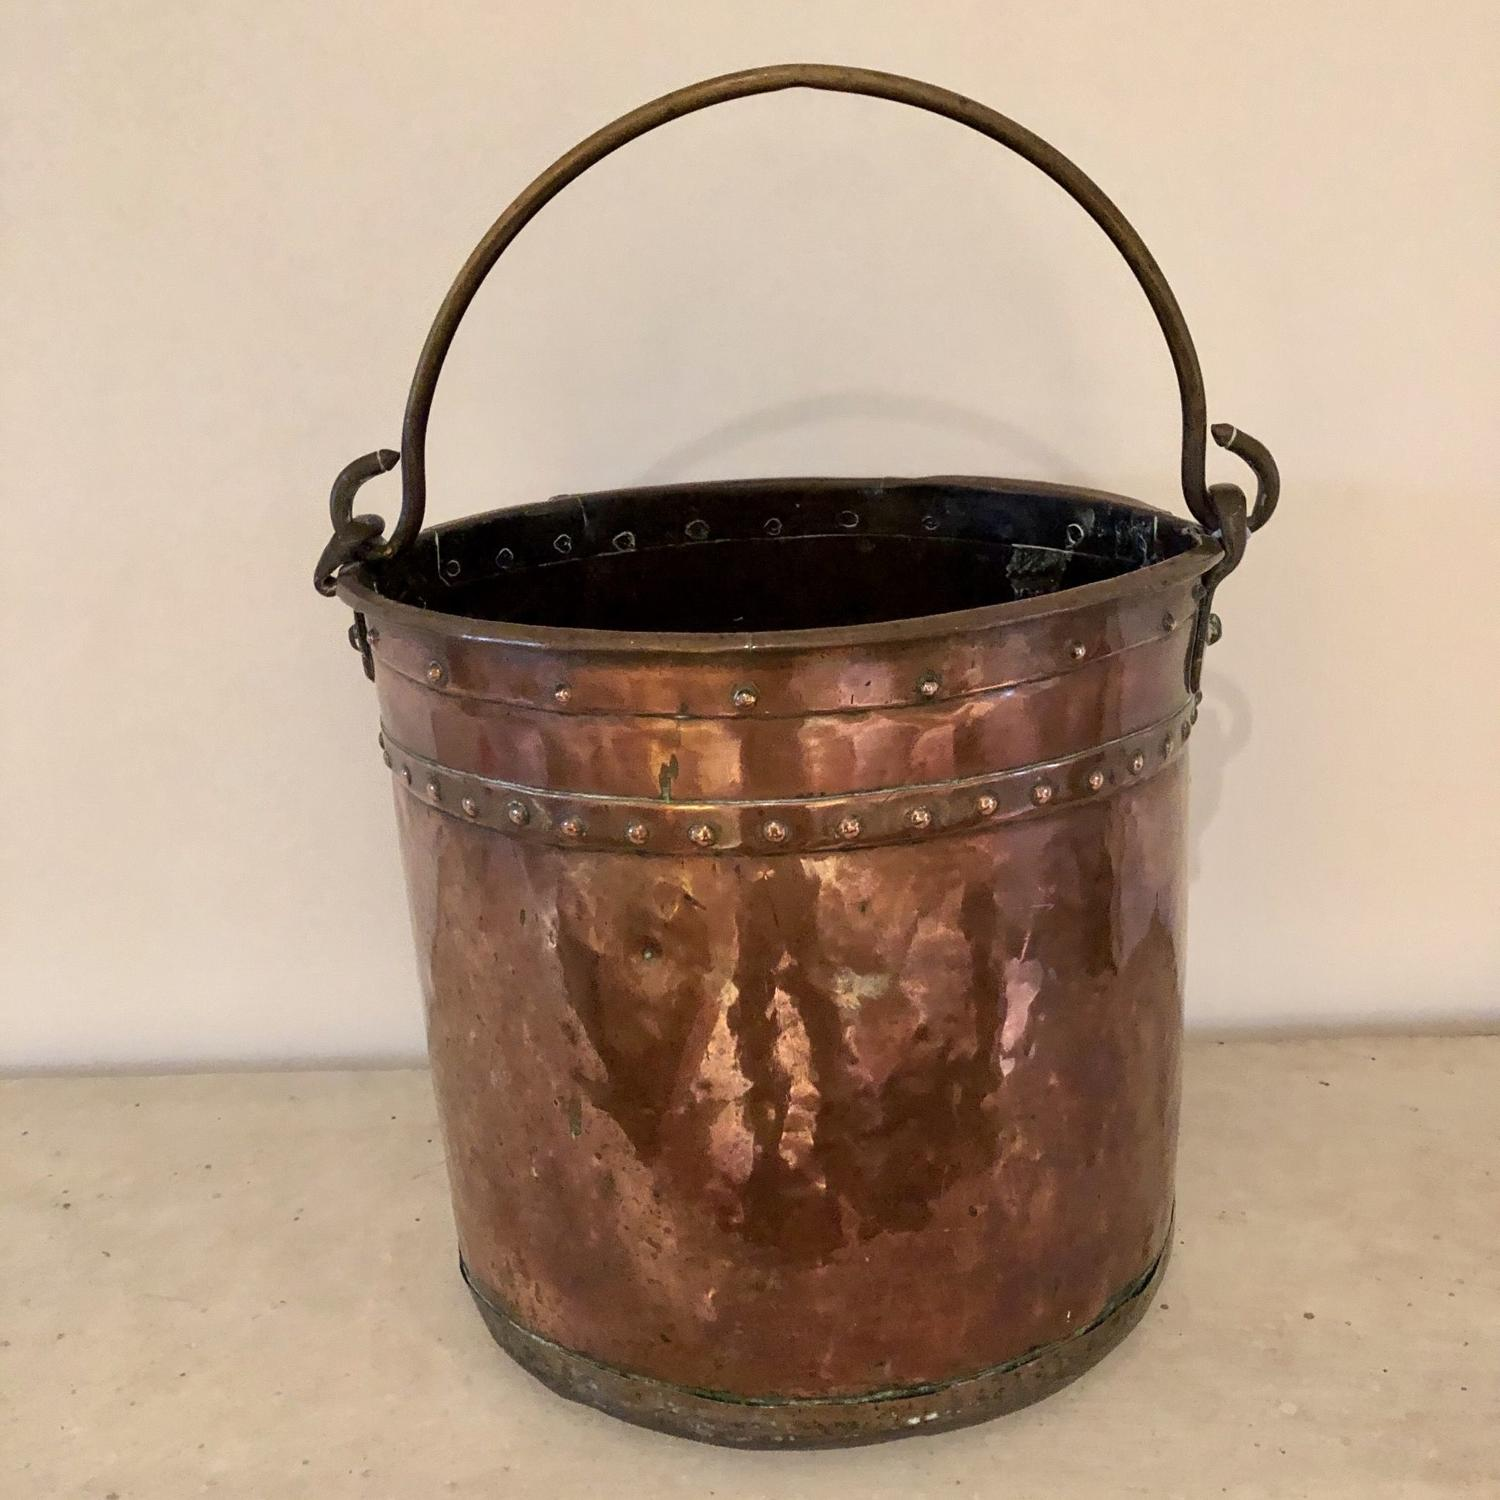 A copper and brass coal bucket